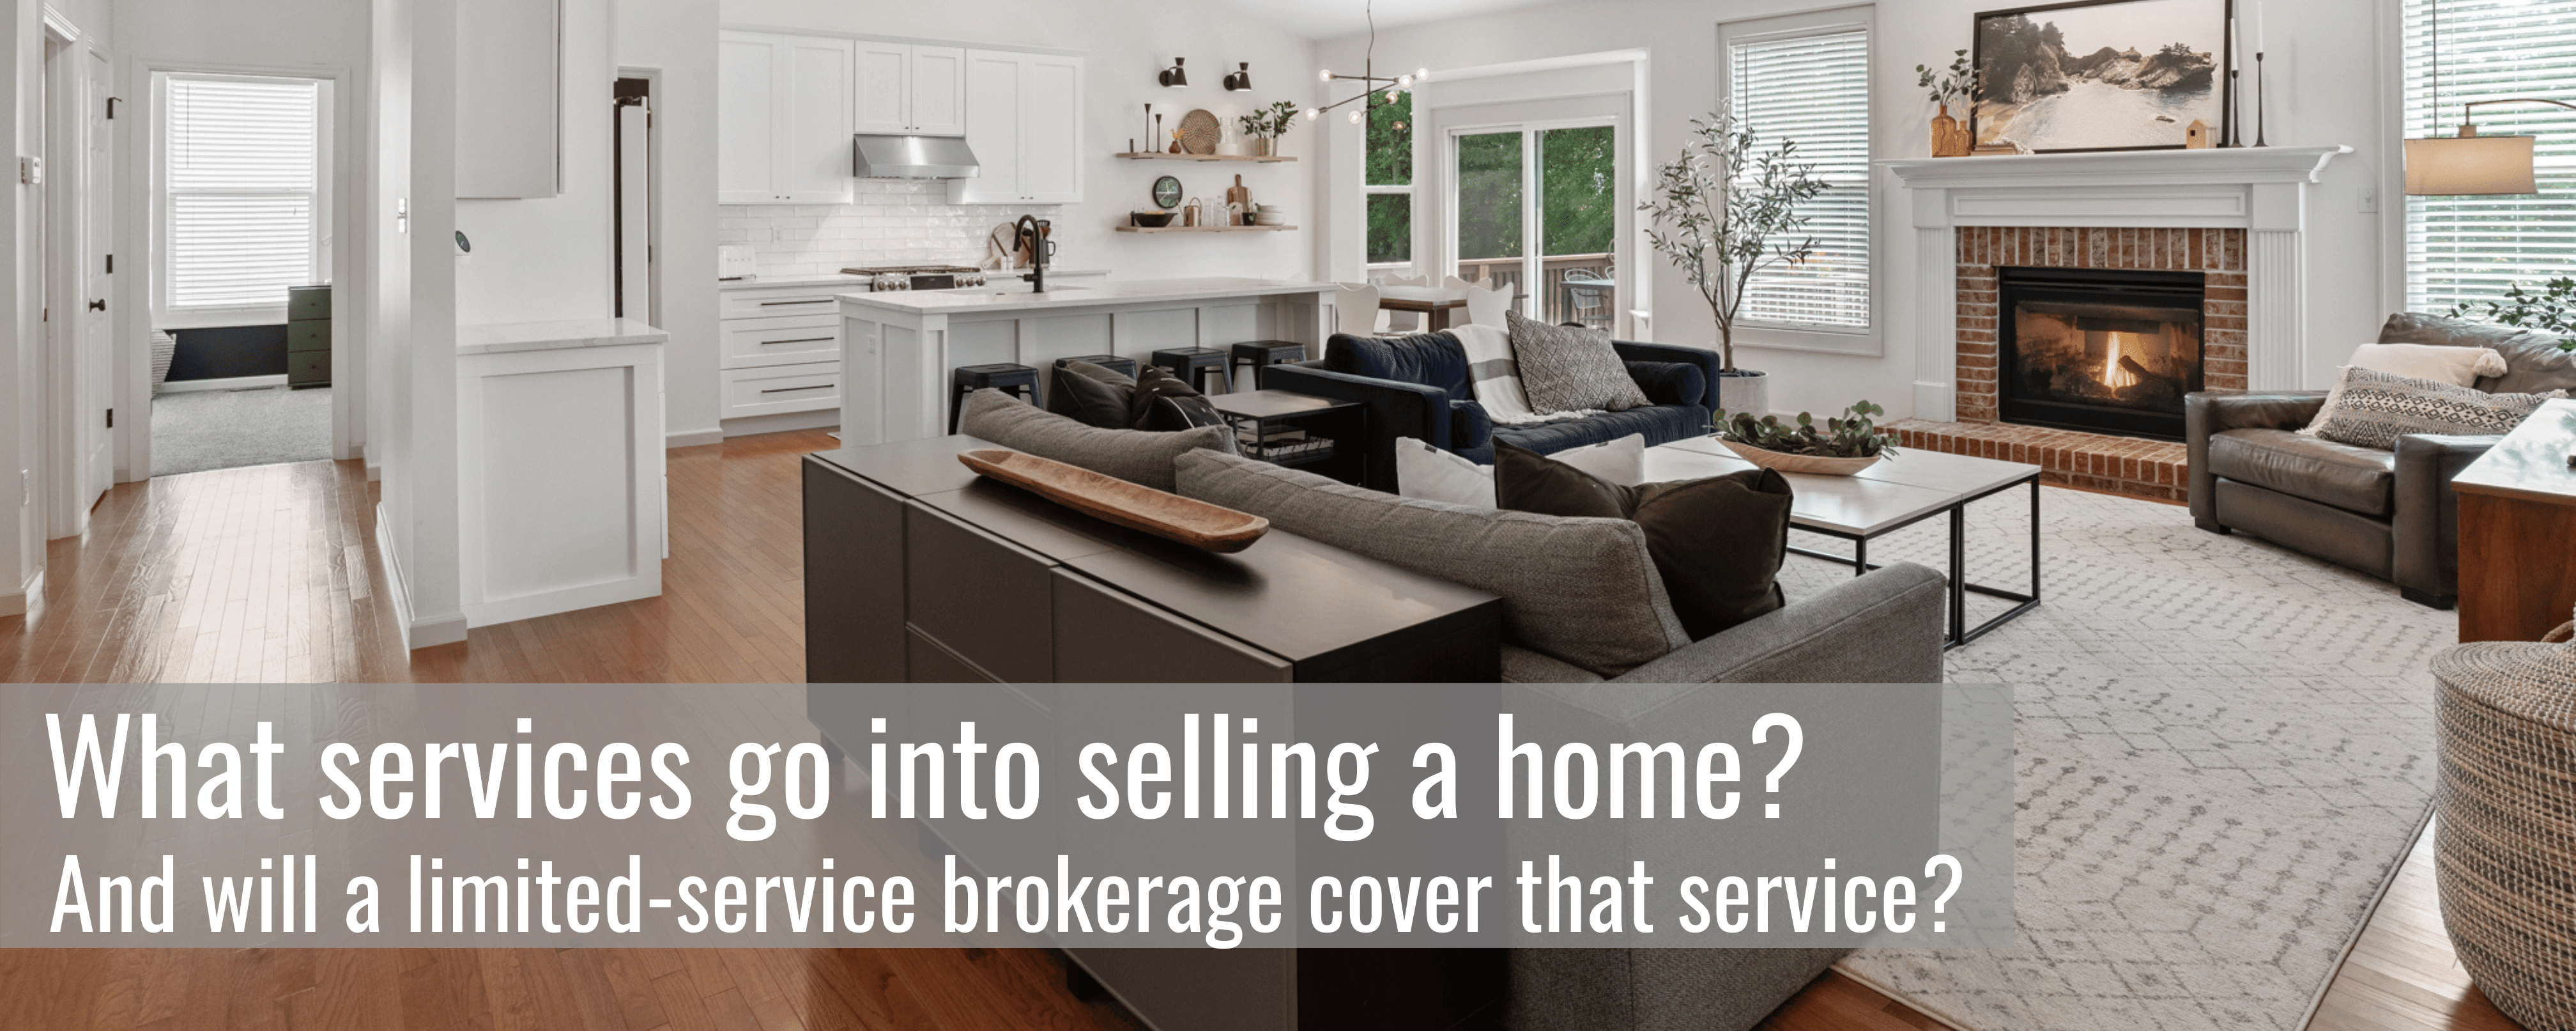 What goes into selling a home?